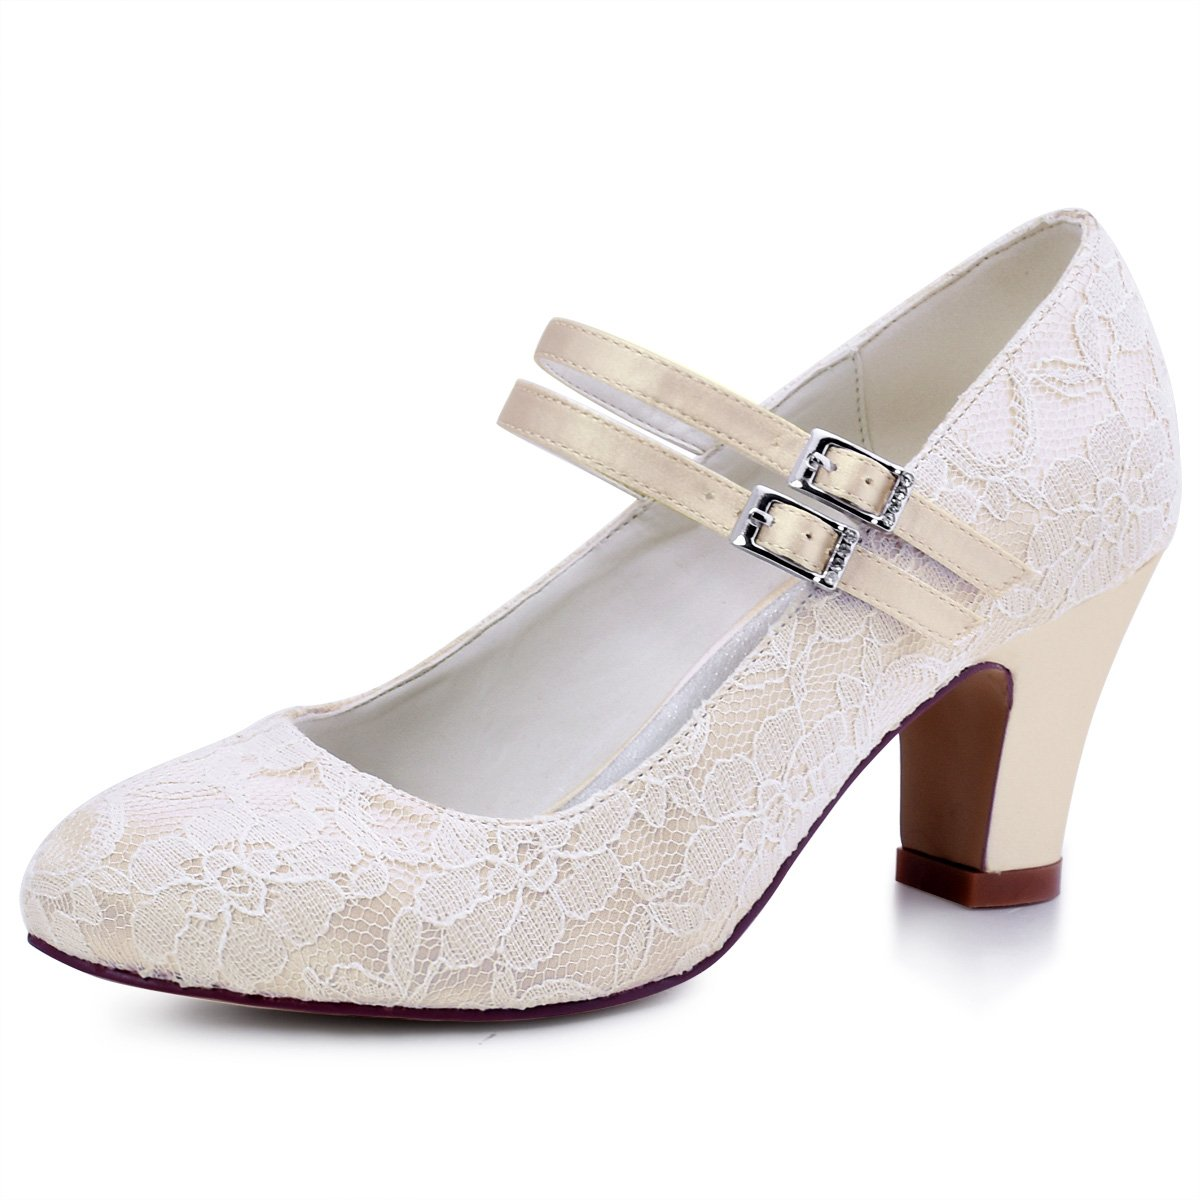 7c1393a945 Wedding heels measures approx 3 inches. Classic lace mary jane heels pumps wedding  Shoes for bride. Perfect bridal shoes work fine for your wedding